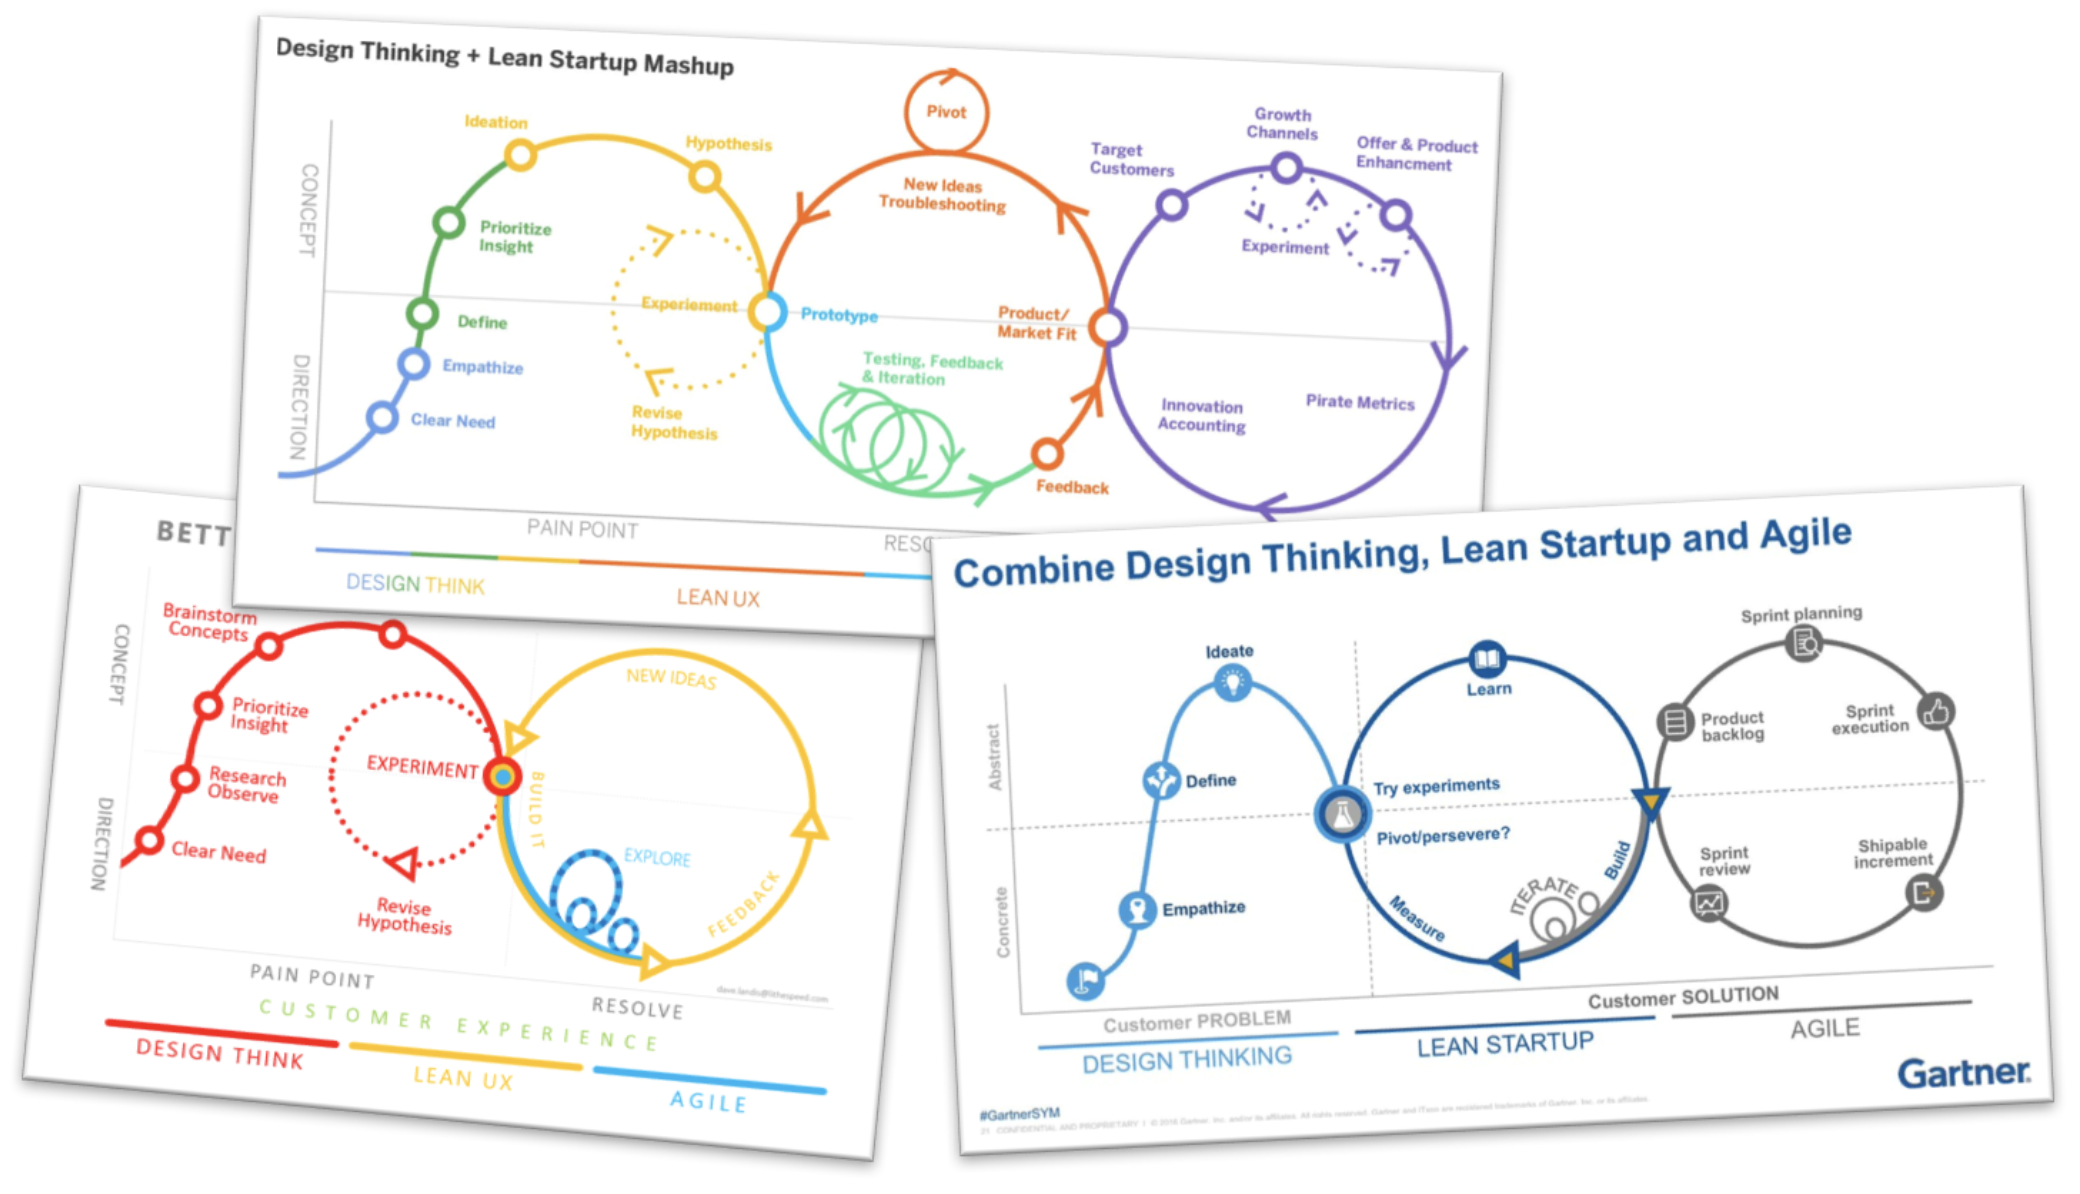 Por quê? Quando? Qual? Design Thinking, Lean Manufacturing, Lean Startup,  Design Sprint ou Agile? | by Raquel Deneige | Medium